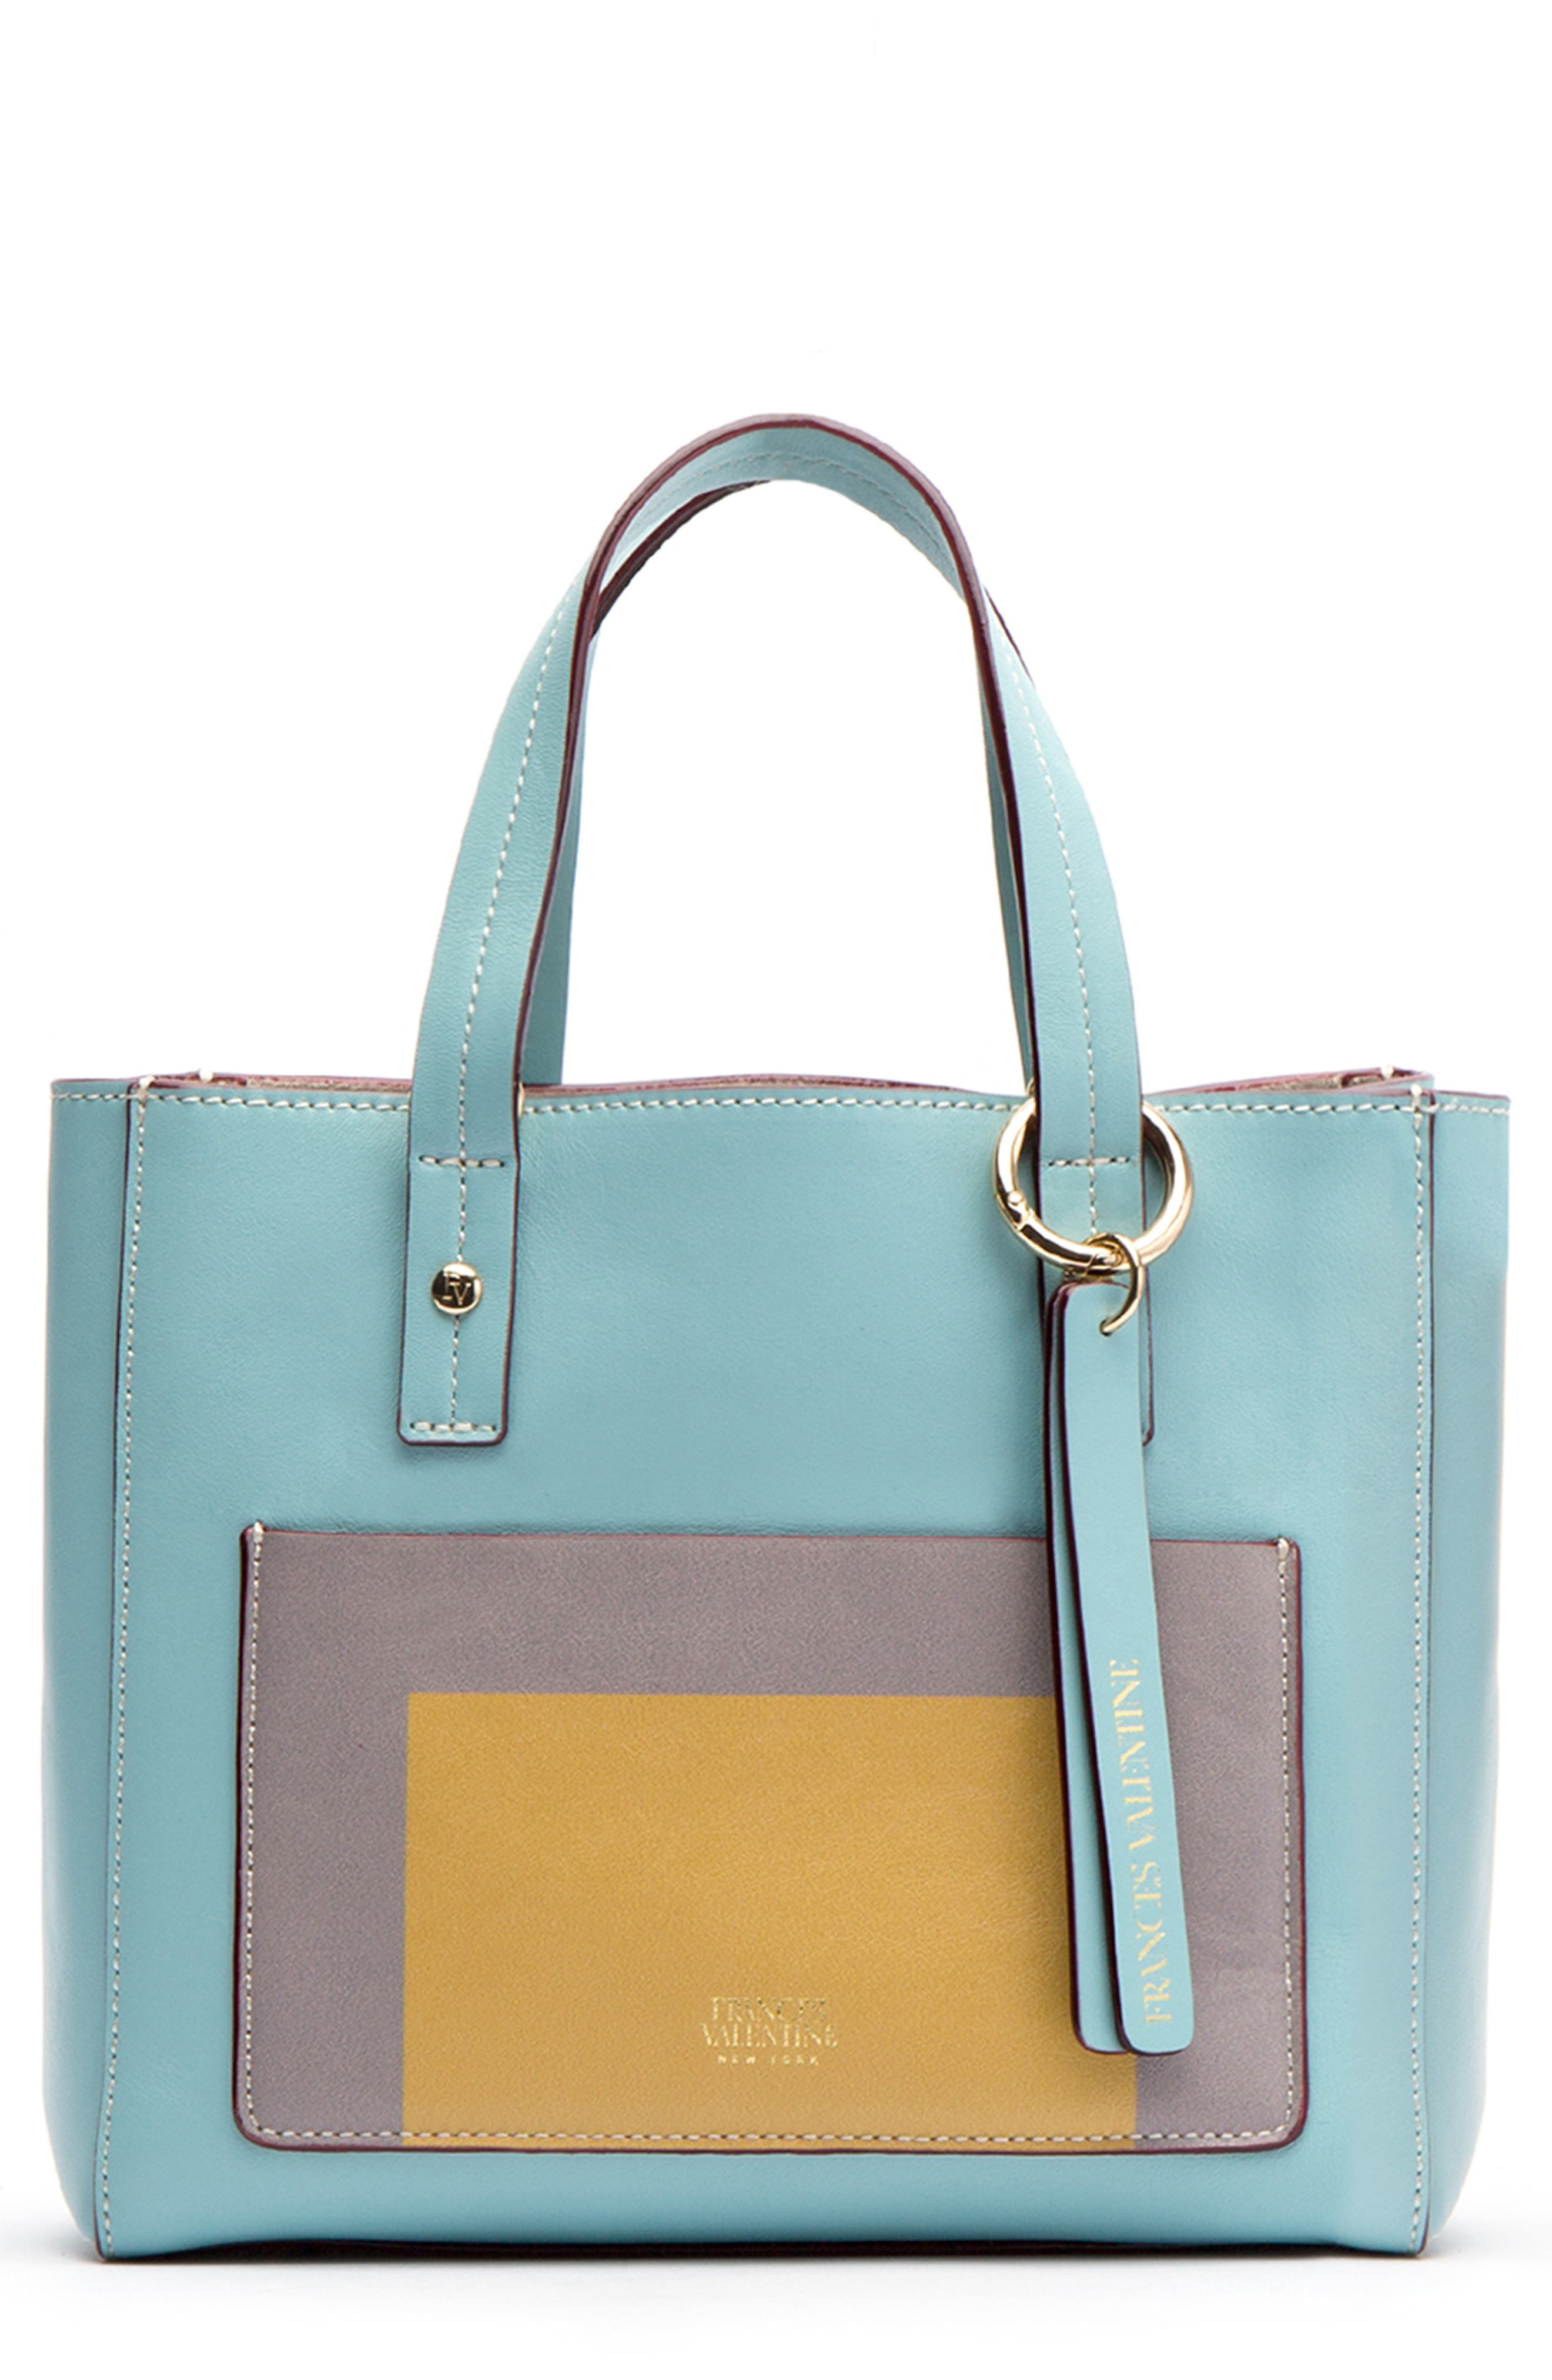 FRANCES VALENTINE Small Chloe Leather Satchel - Blue in Light Blue/ Multi